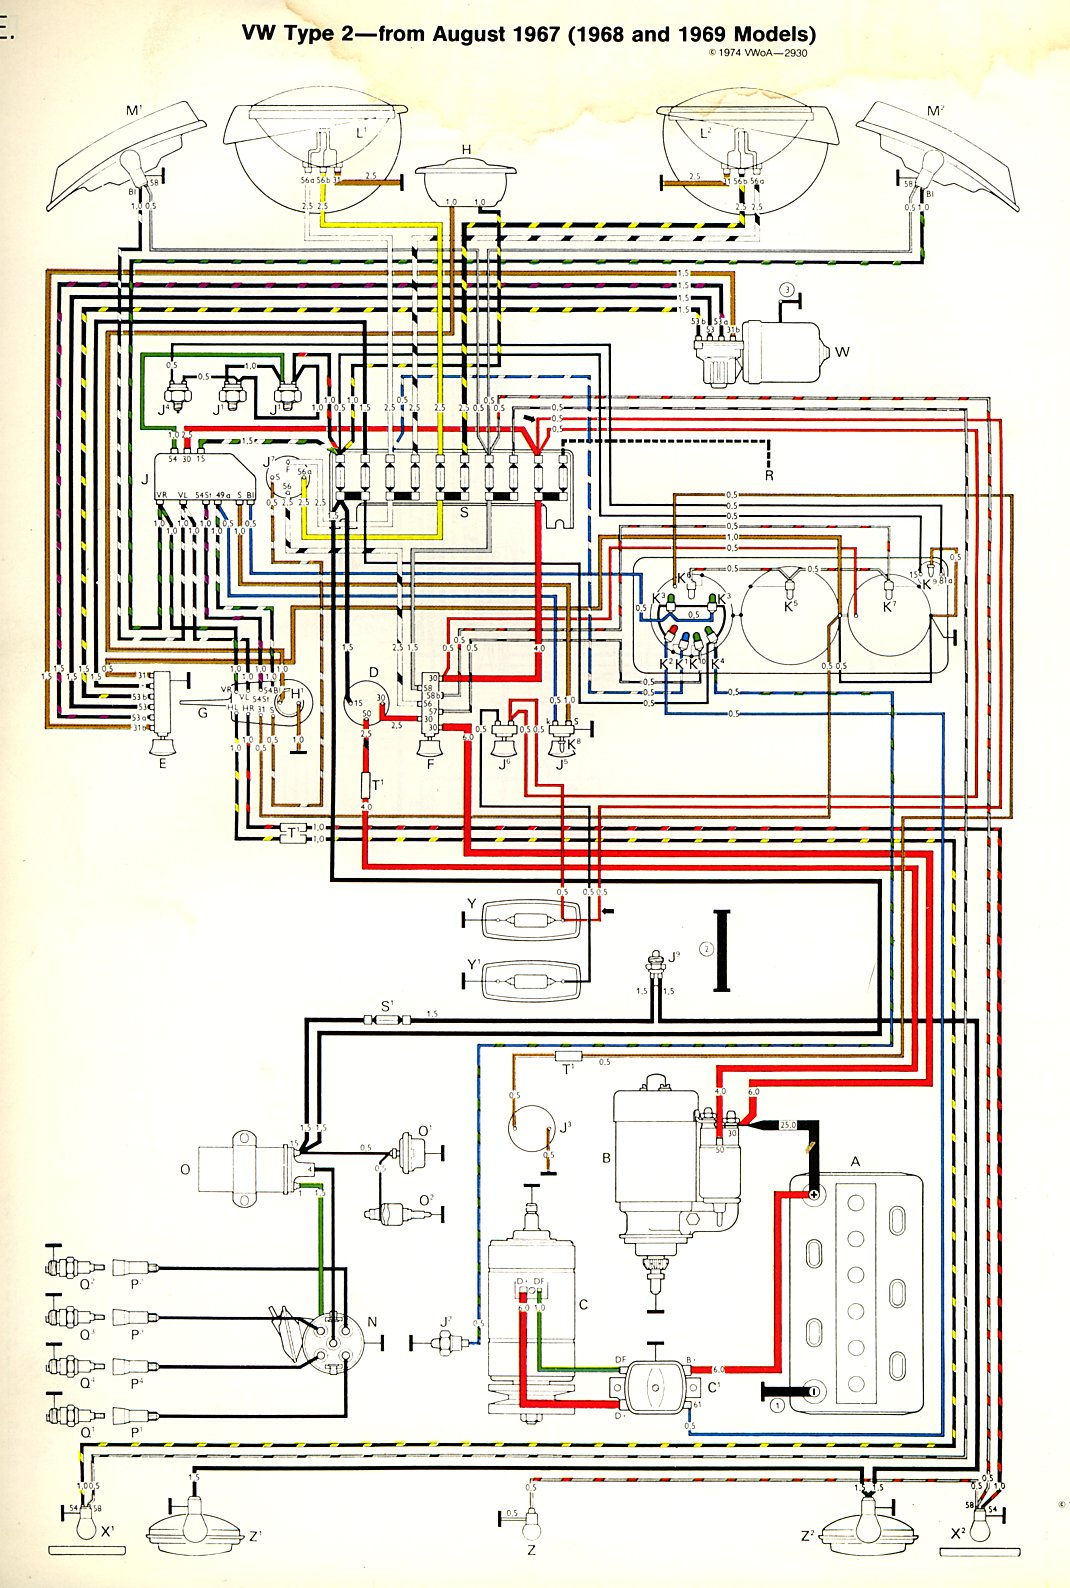 Type 2 Wiring Diagrams 1973 C10 Fuse Box